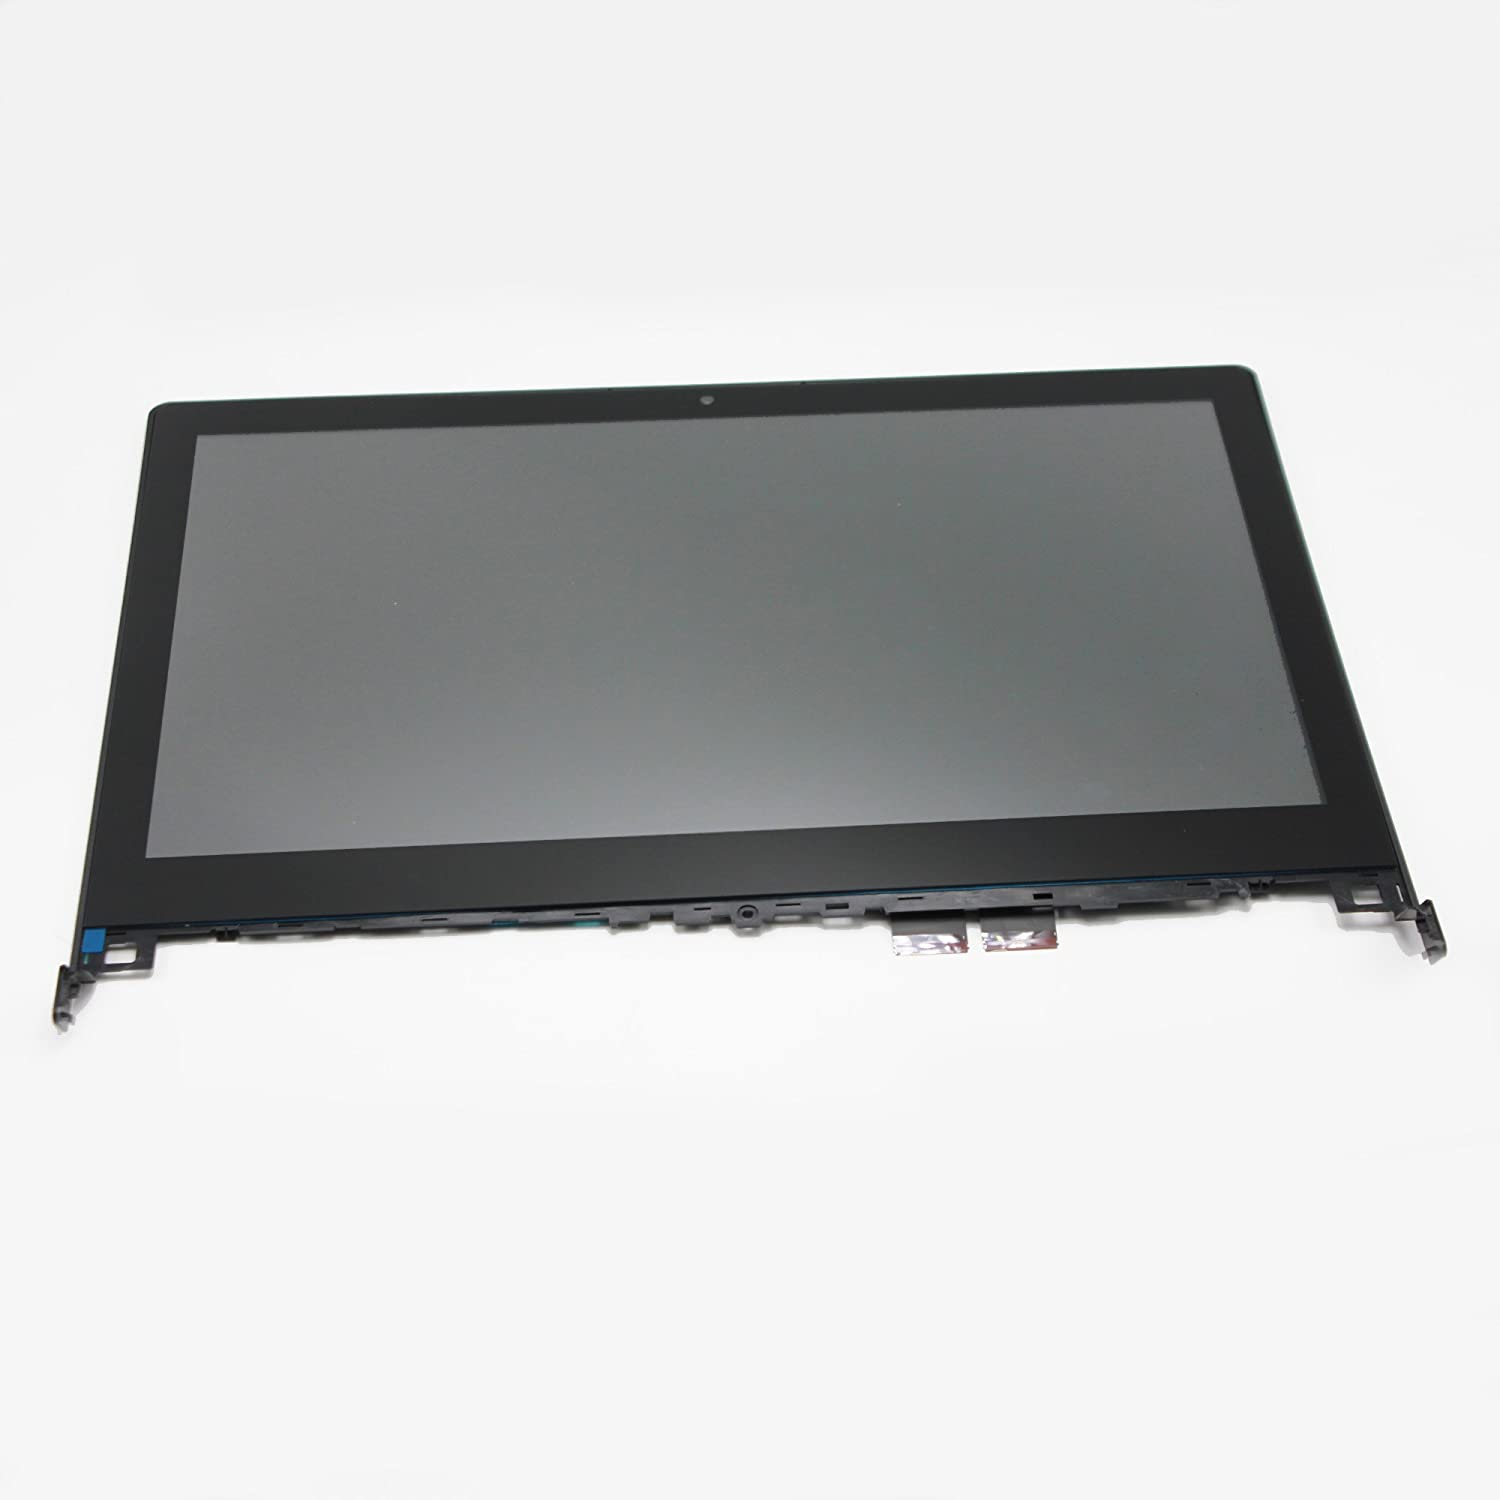 LCDOLED 14.0 inch 1080p LED LCD Display Touch Screen Digitizer Assembly + Bezel for Lenovo Flex 2-14 2-14D 20404 20376